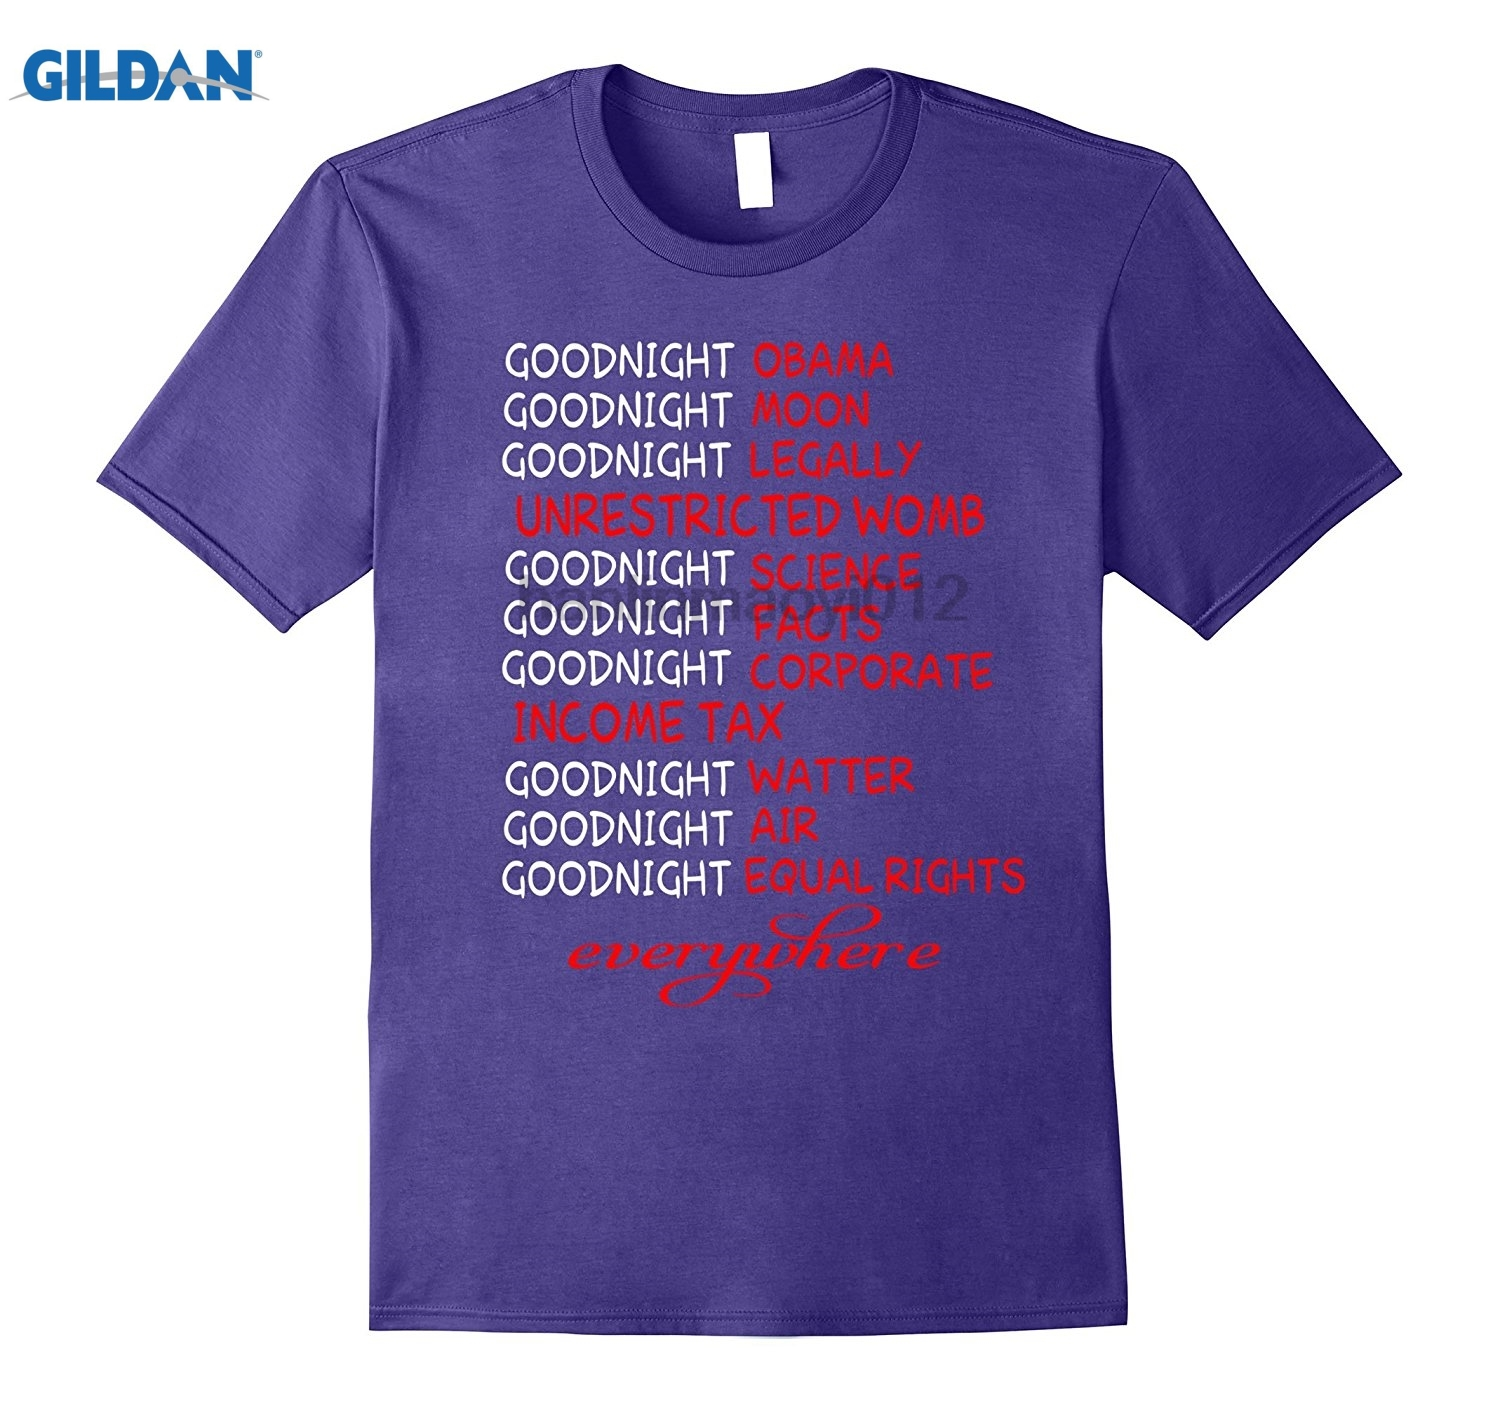 GILDAN Goodnight Obama , Goodnight Moon , Goodnight Legally T Shirt glasses Womens T-shirt